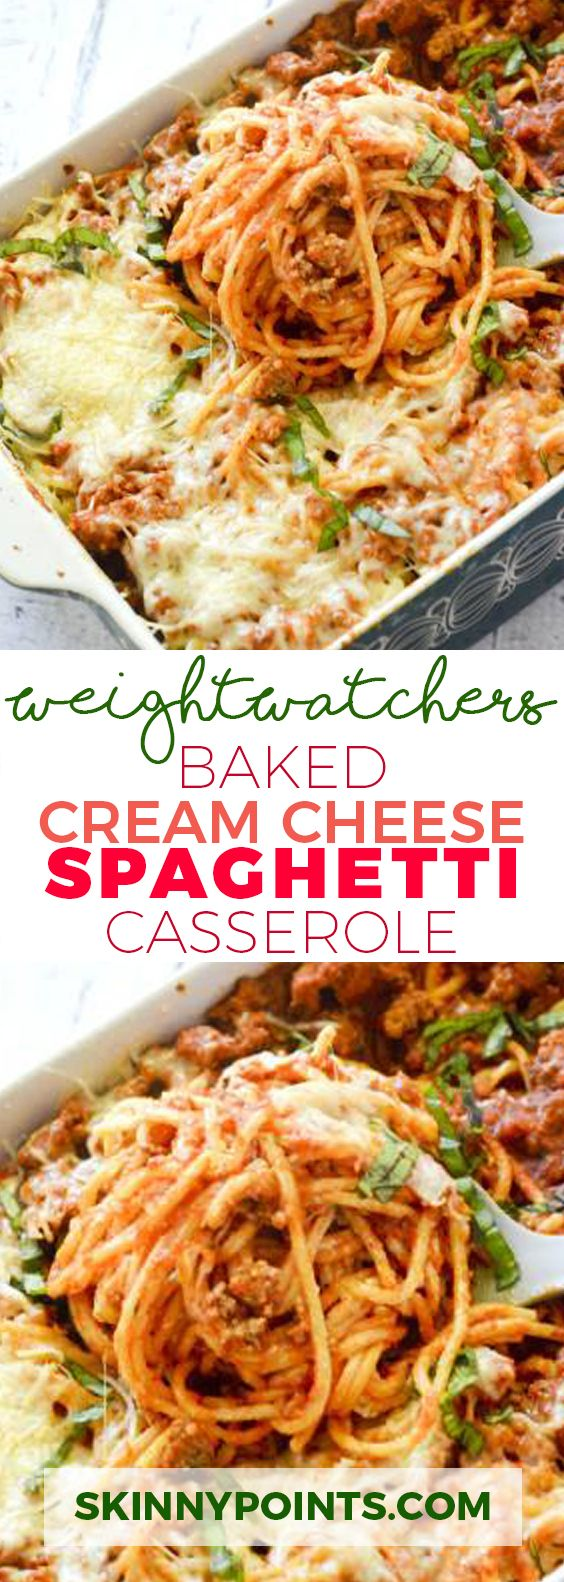 """Baked Cream Cheese Spaghetti Casserole With Weight watcher Smart Points Weight watchers meals <a href=""""http://pbxjj.lose-wight-easily.com/c/1c869b4f2f56c555?s1=1408&s2=9323&s3=weight-watchers&s5=pinterest"""">Effective weight loss</a>"""